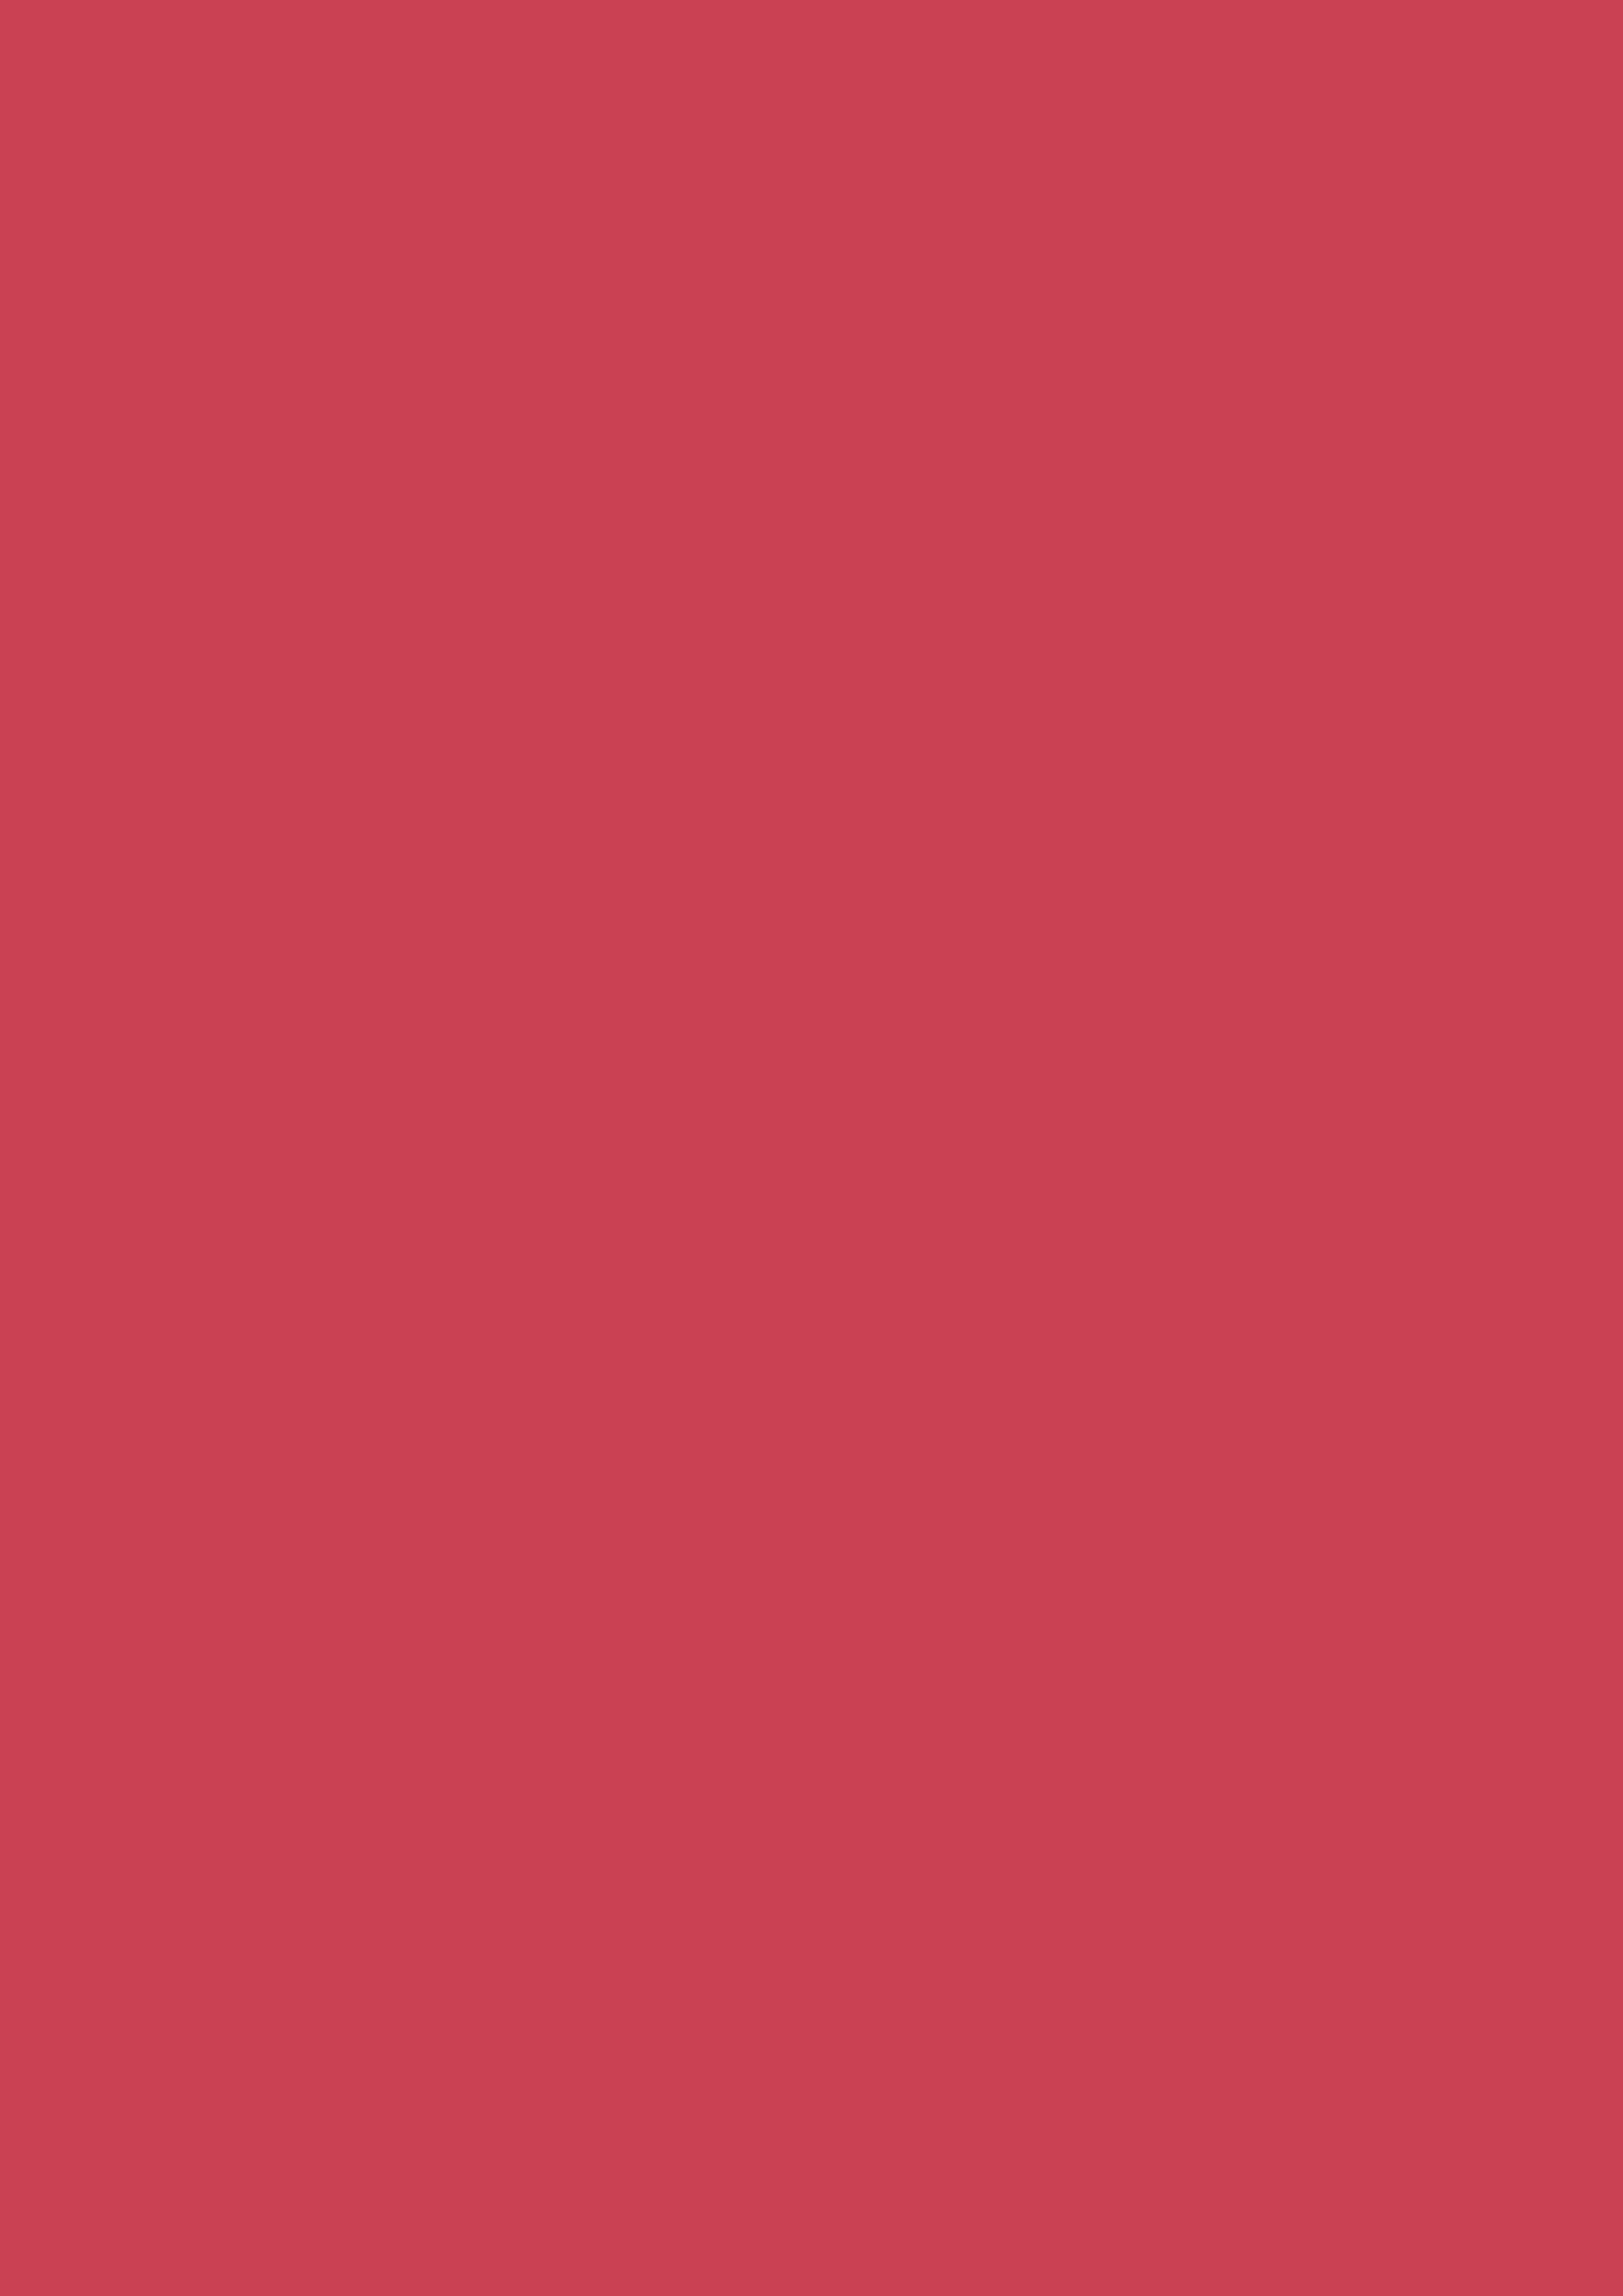 2480x3508 Brick Red Solid Color Background